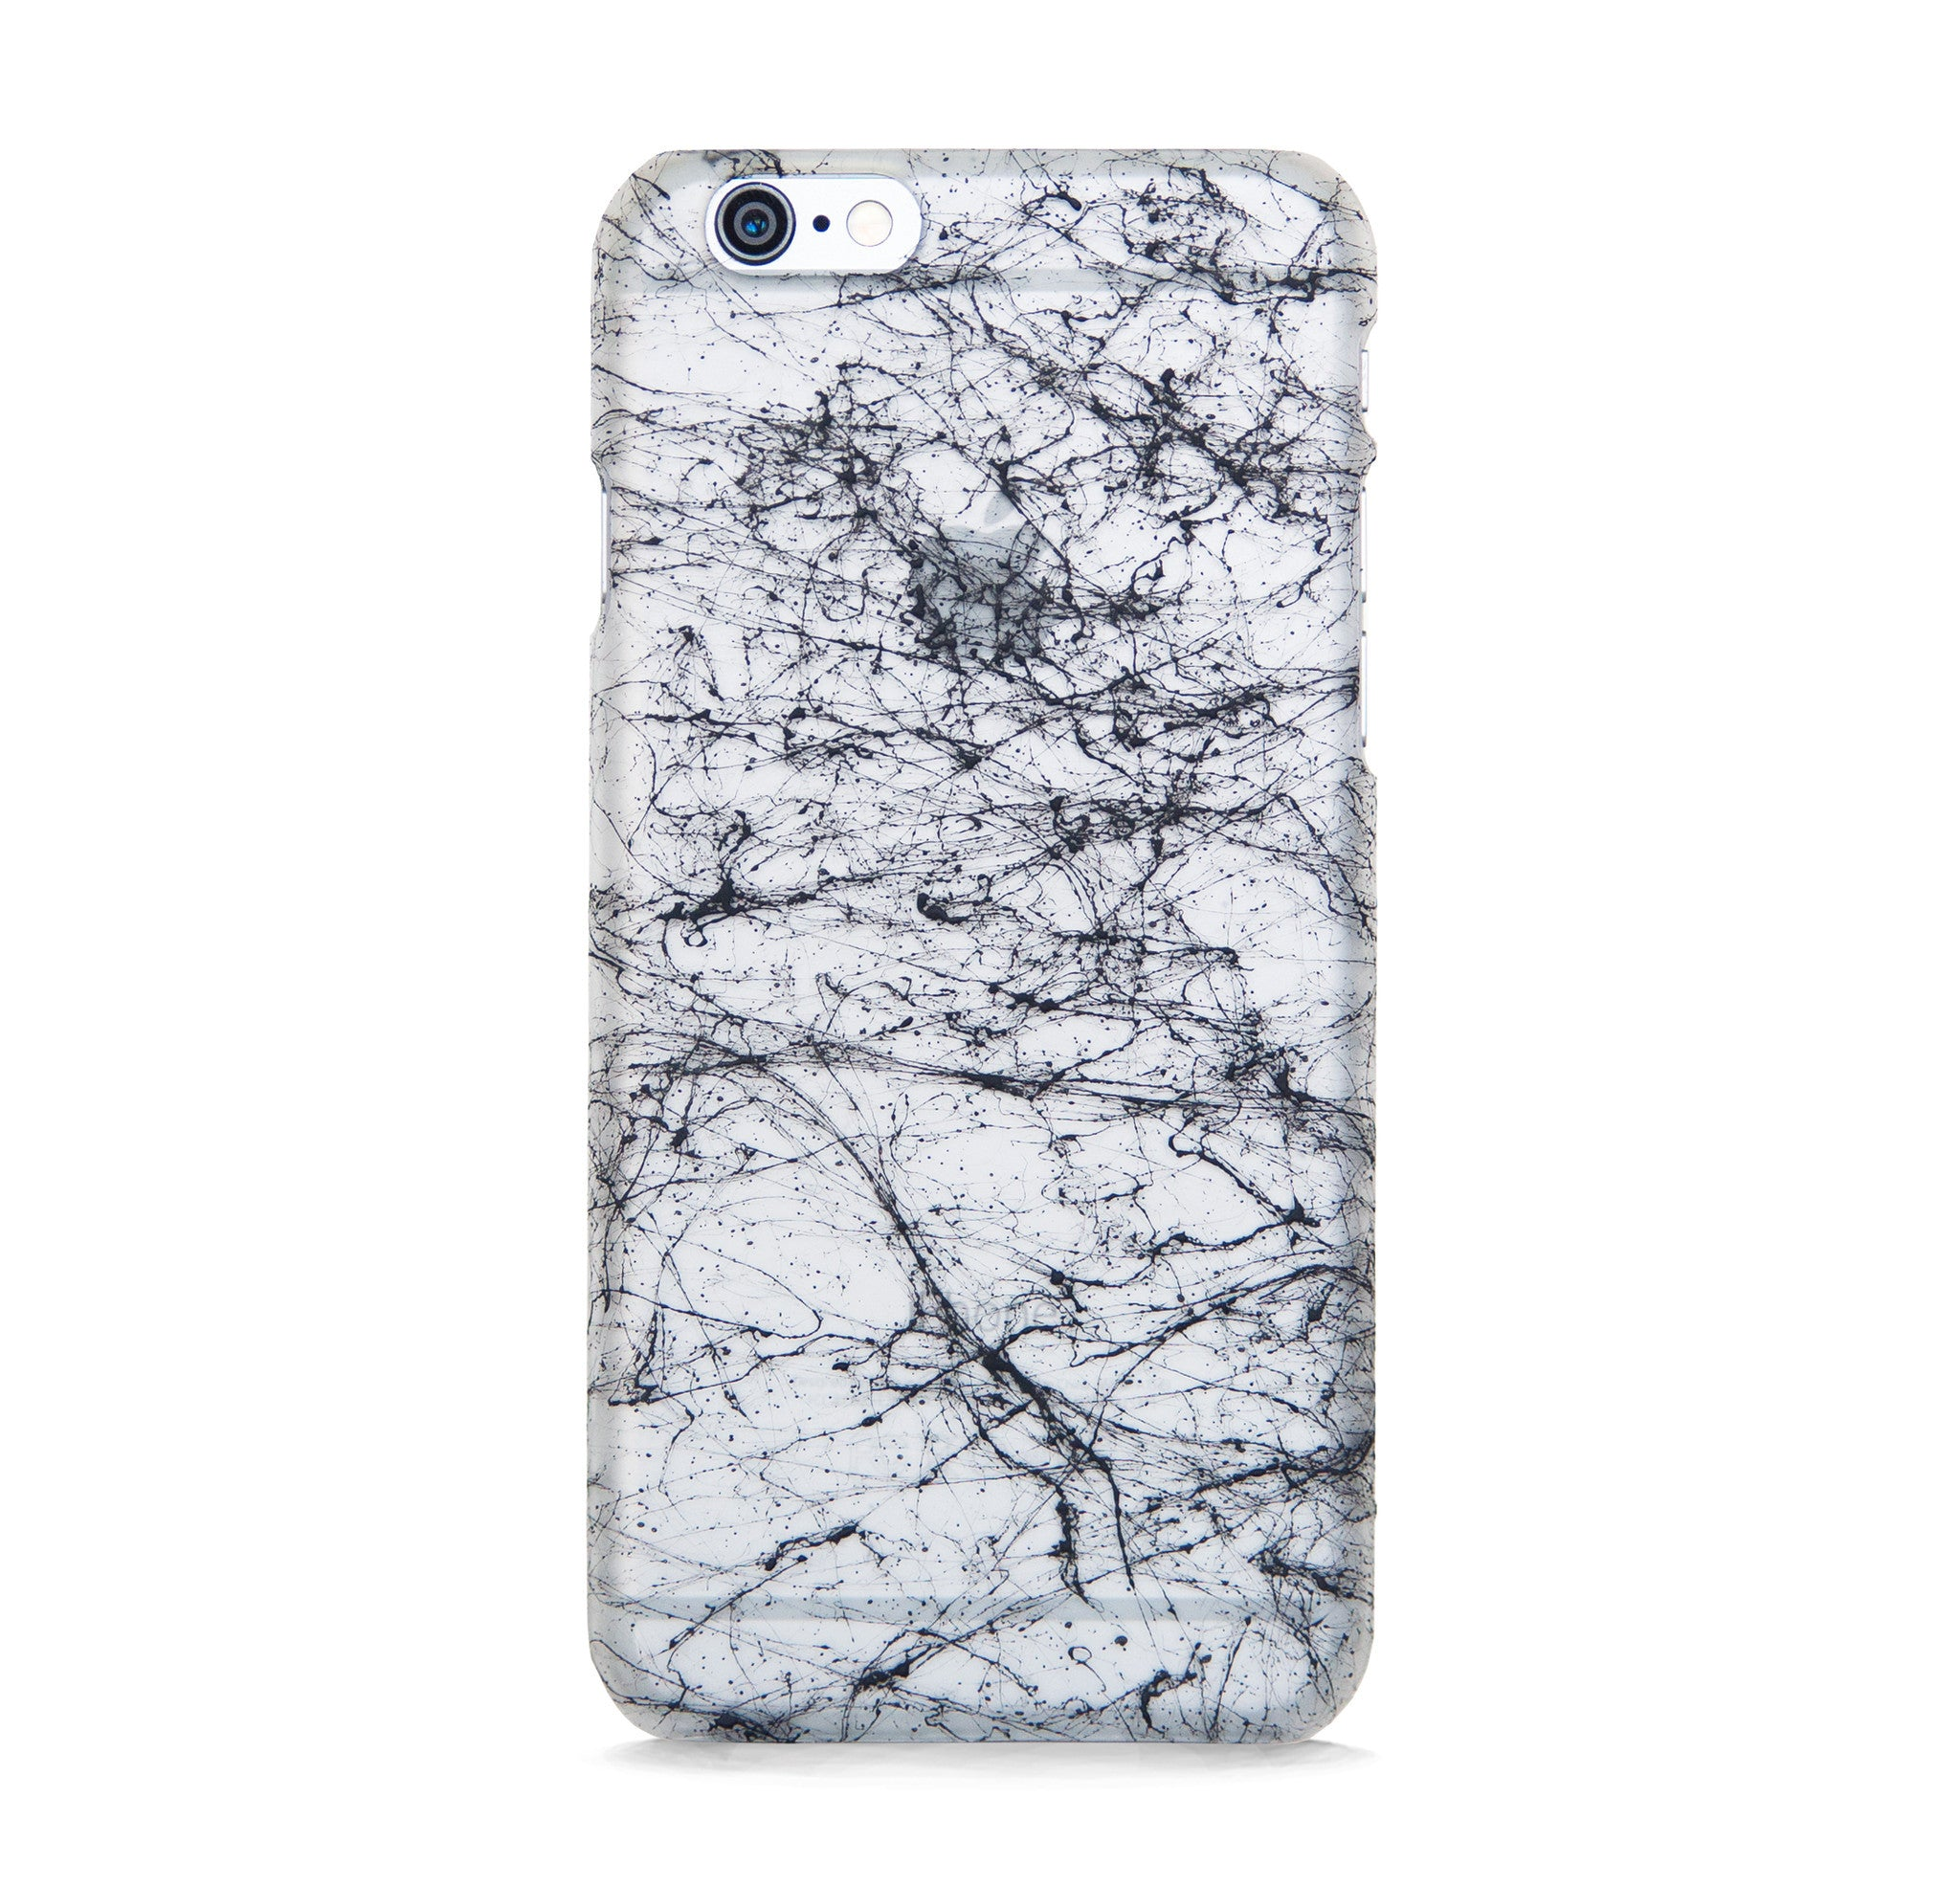 IPHONE 6/6s ARTISTIC SCATTERED DESIGN CASE